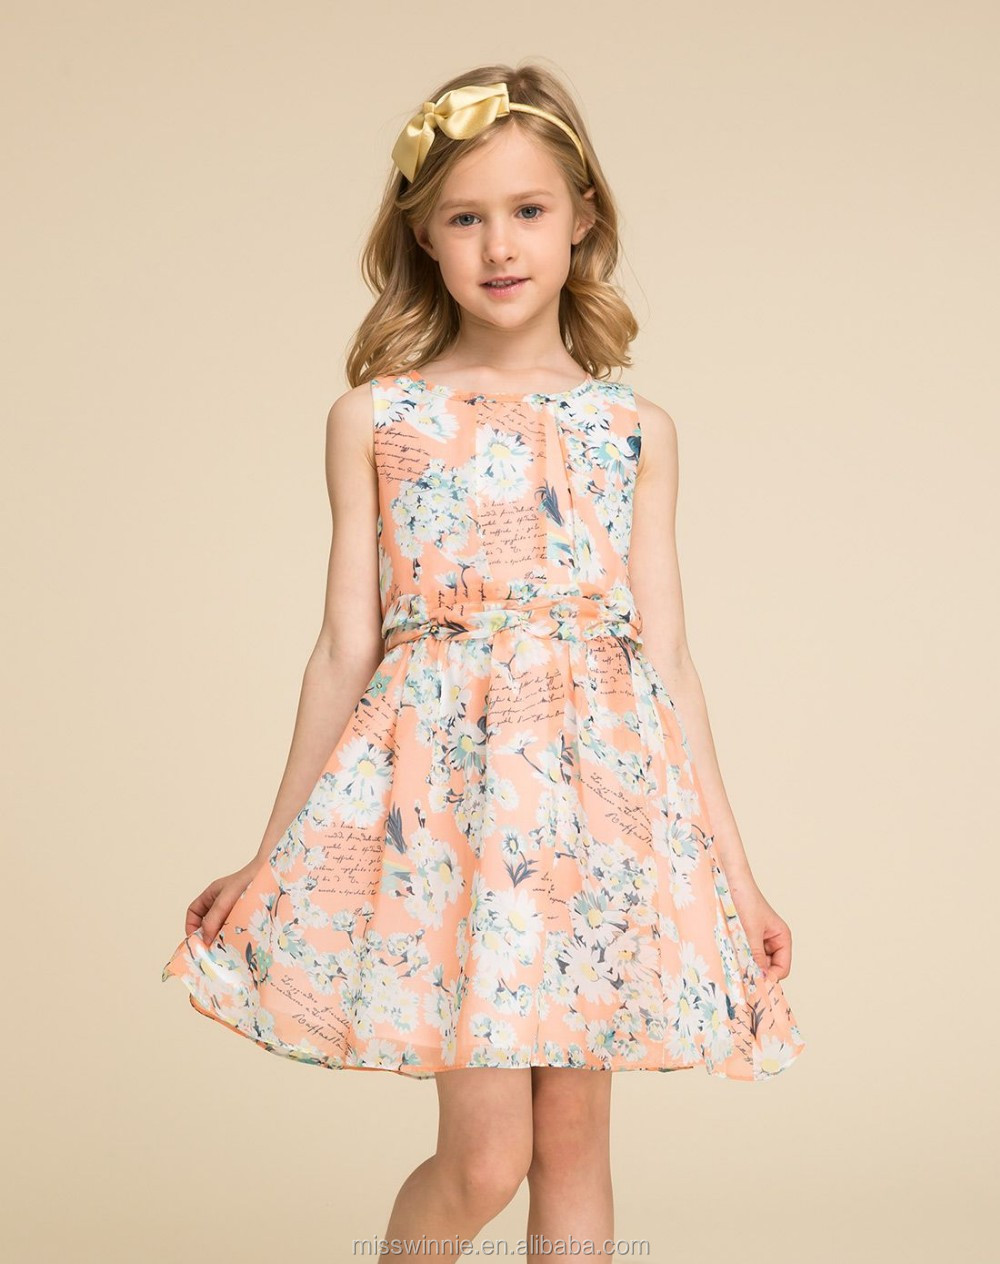 b4f65acaad78 colorful printing baby frock designs fancy 100% cotton kids beautiful model  dresses